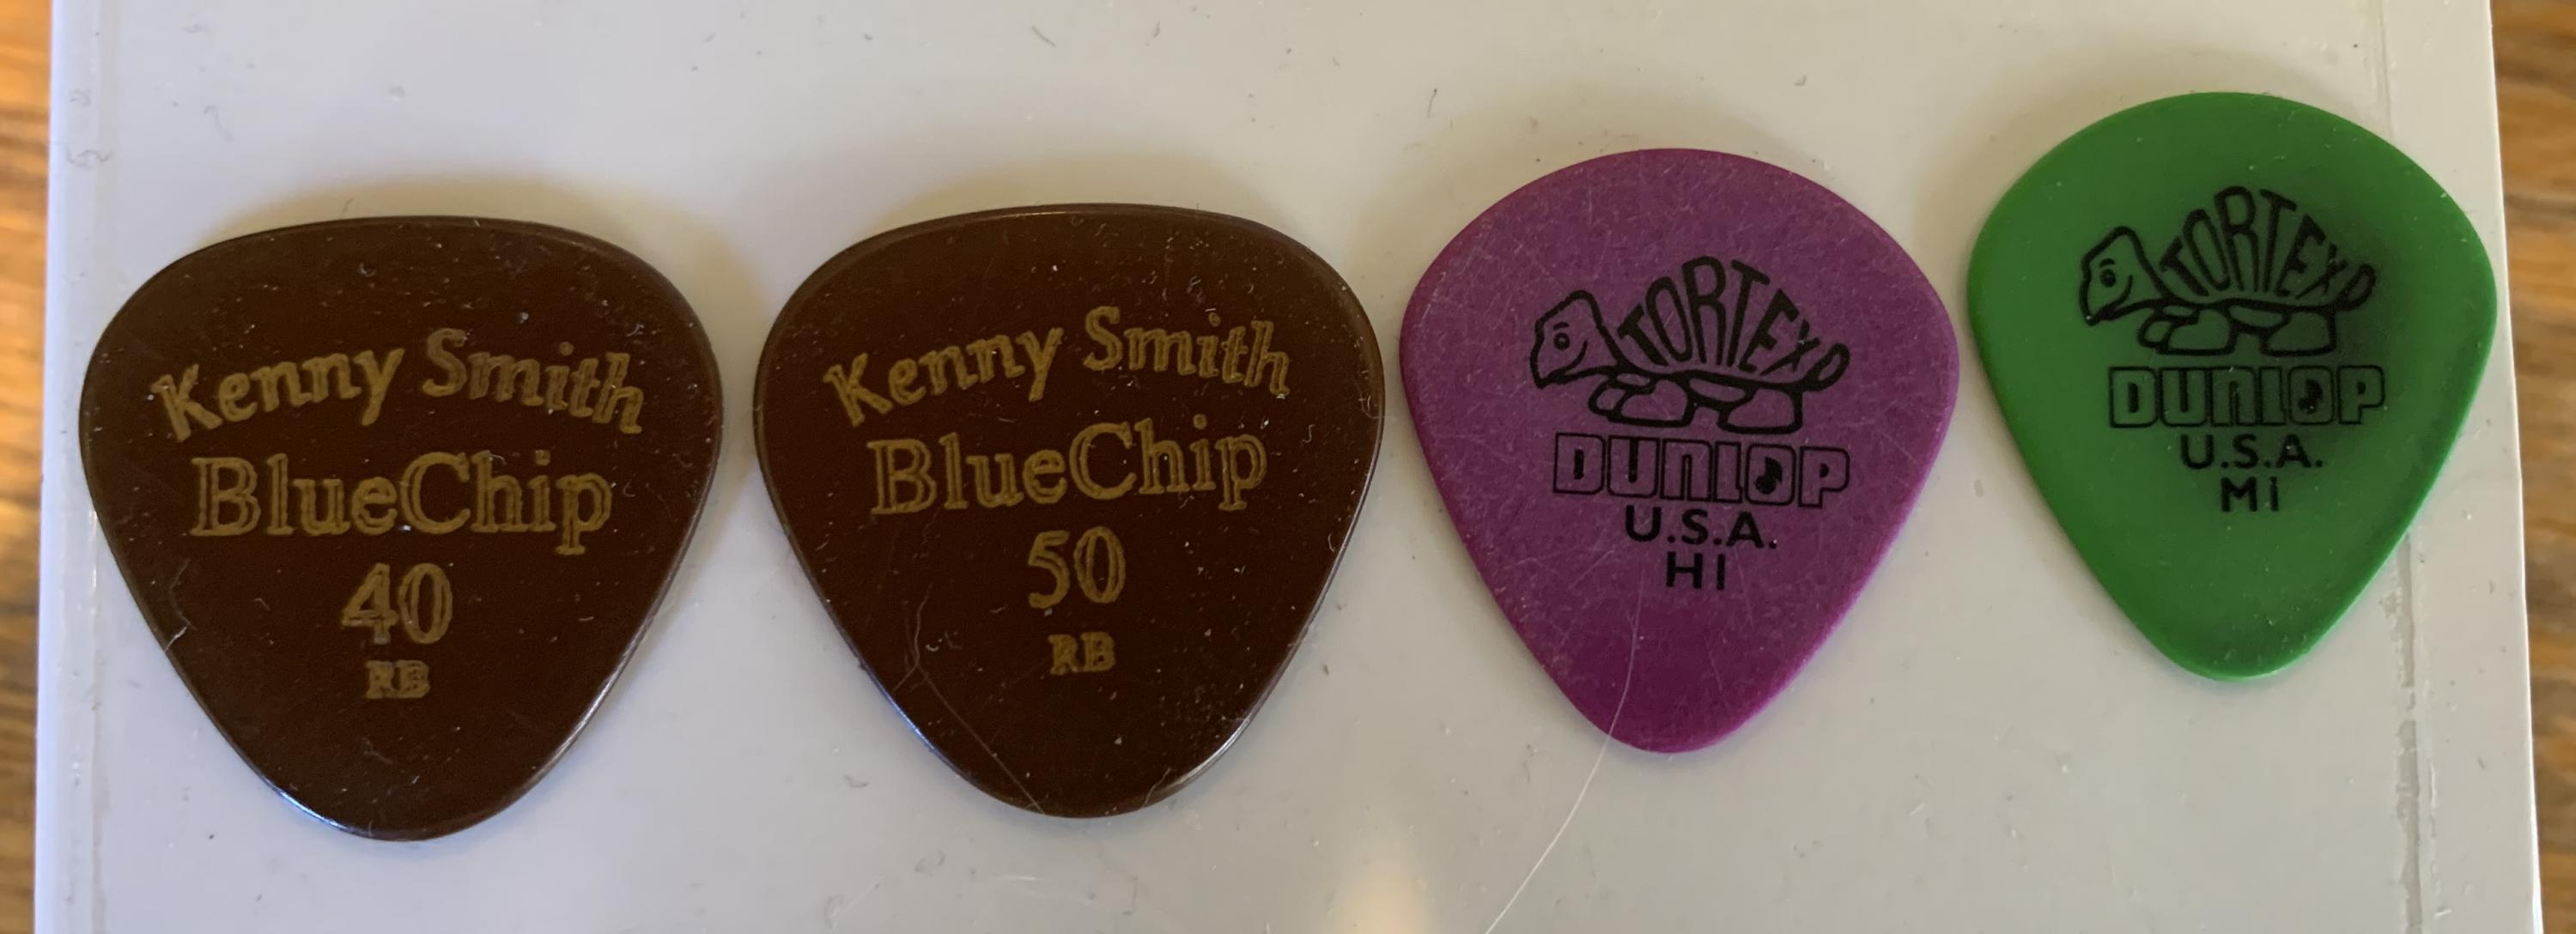 Using Rounded Shoulders of the Pick - Thanks for the tip whoever you were...-picks-jpg